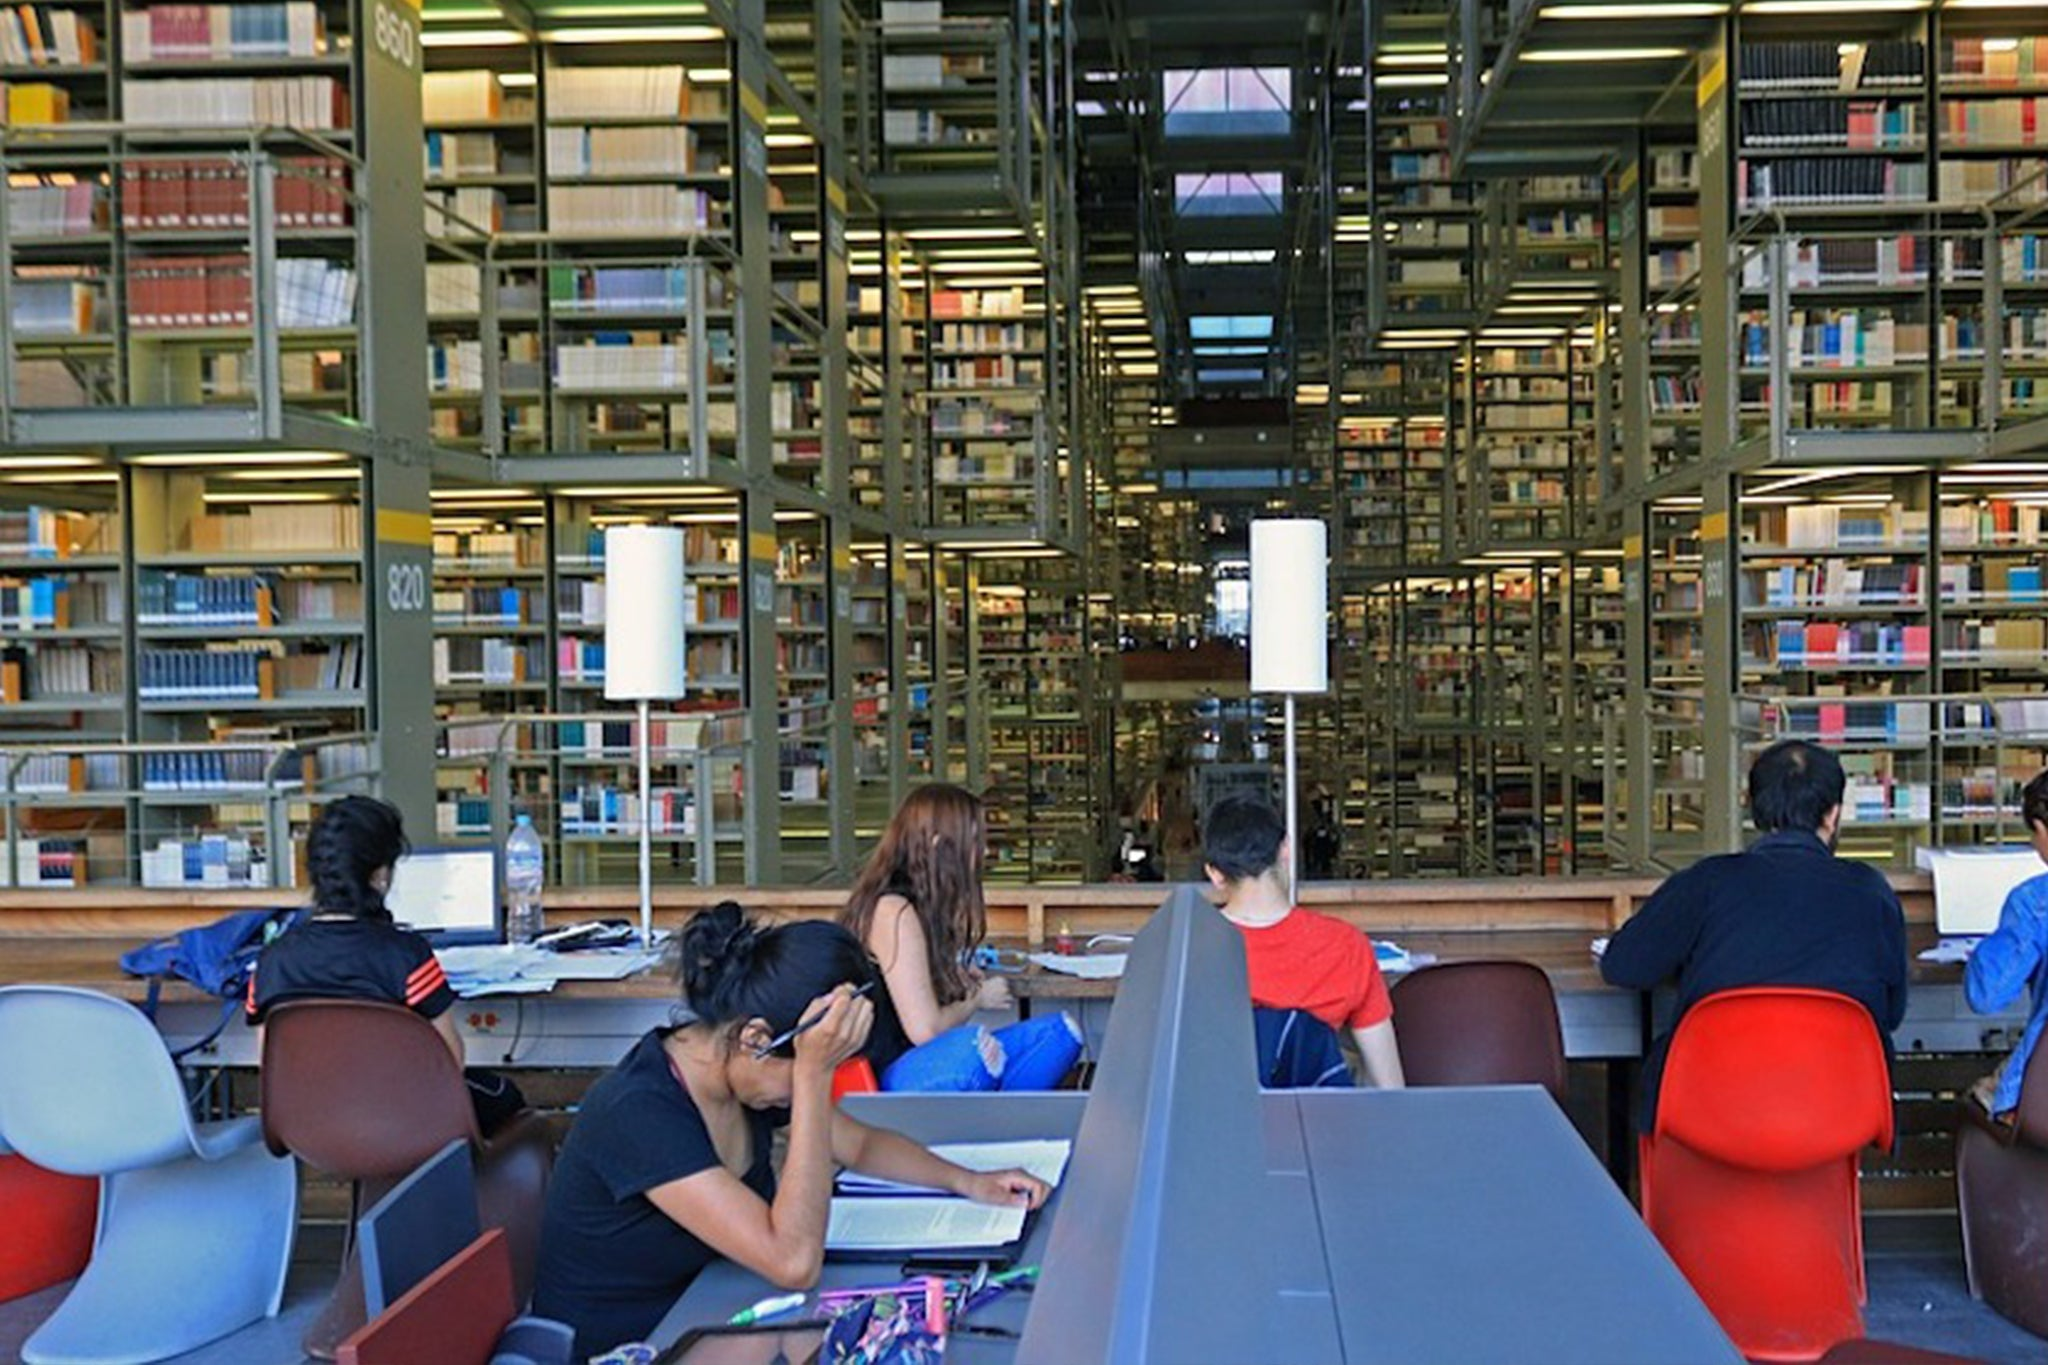 architecture photos library design Biblioteca Vasconcelos Mexico City